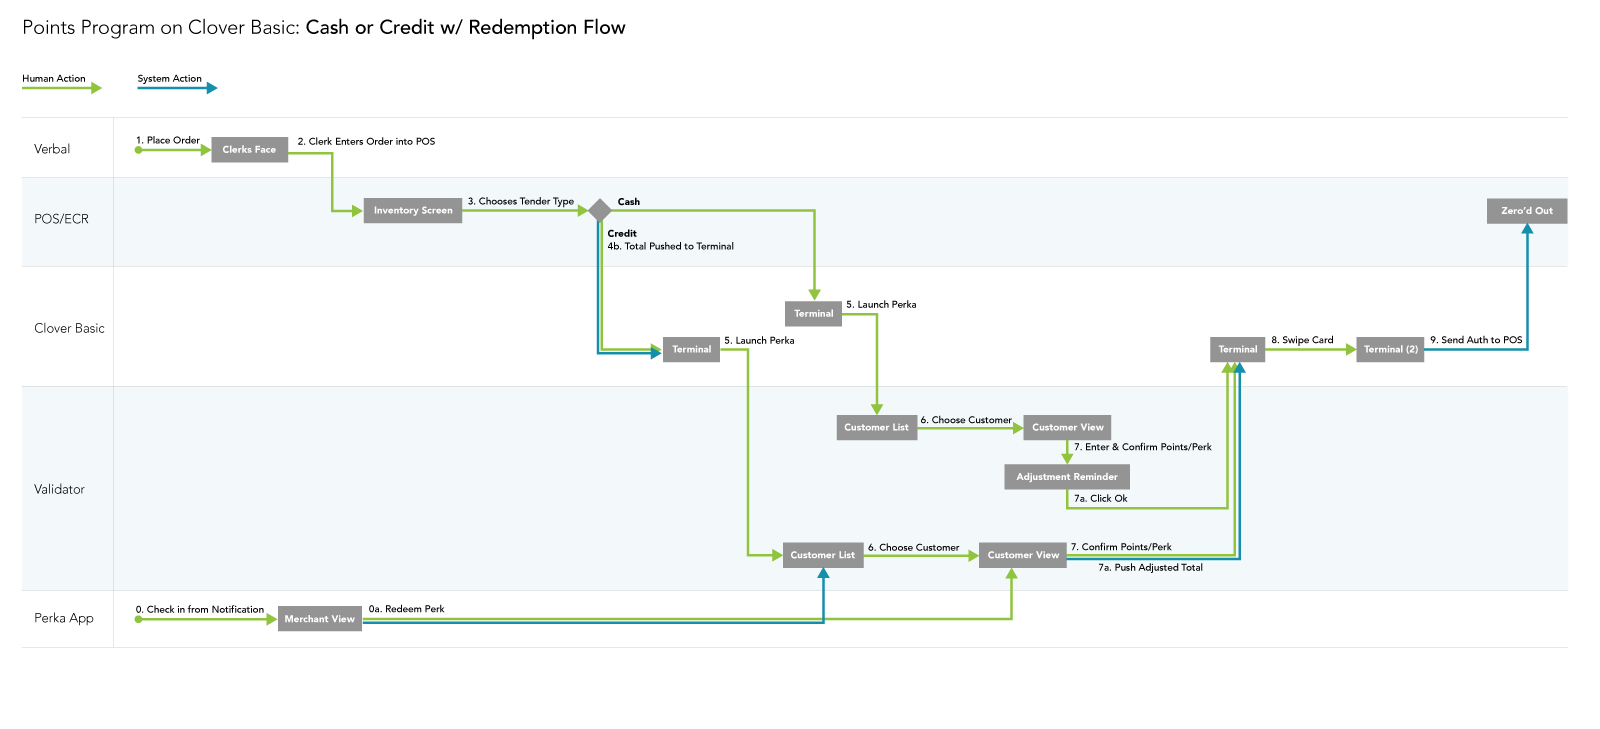 A task flow with an adaptive experience depending on whether or not the validator would have knowledge of the order total, inventory, etc.